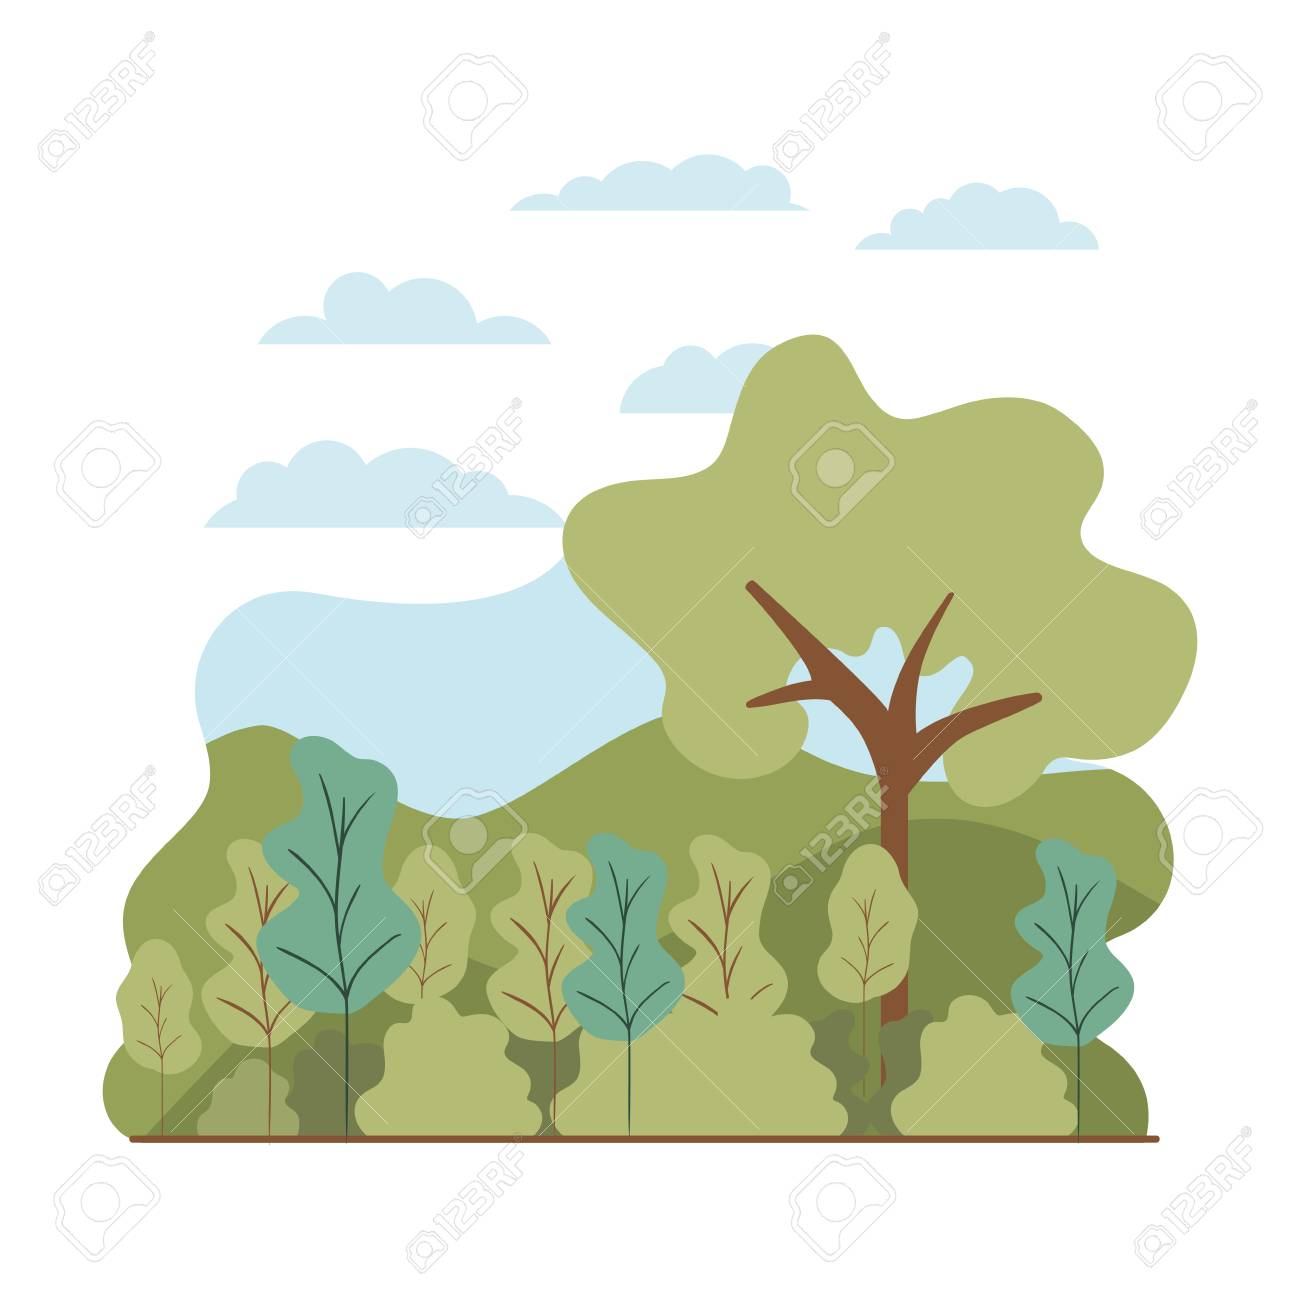 trees plant with landscape isolated icon vector illustration desing - 127692444